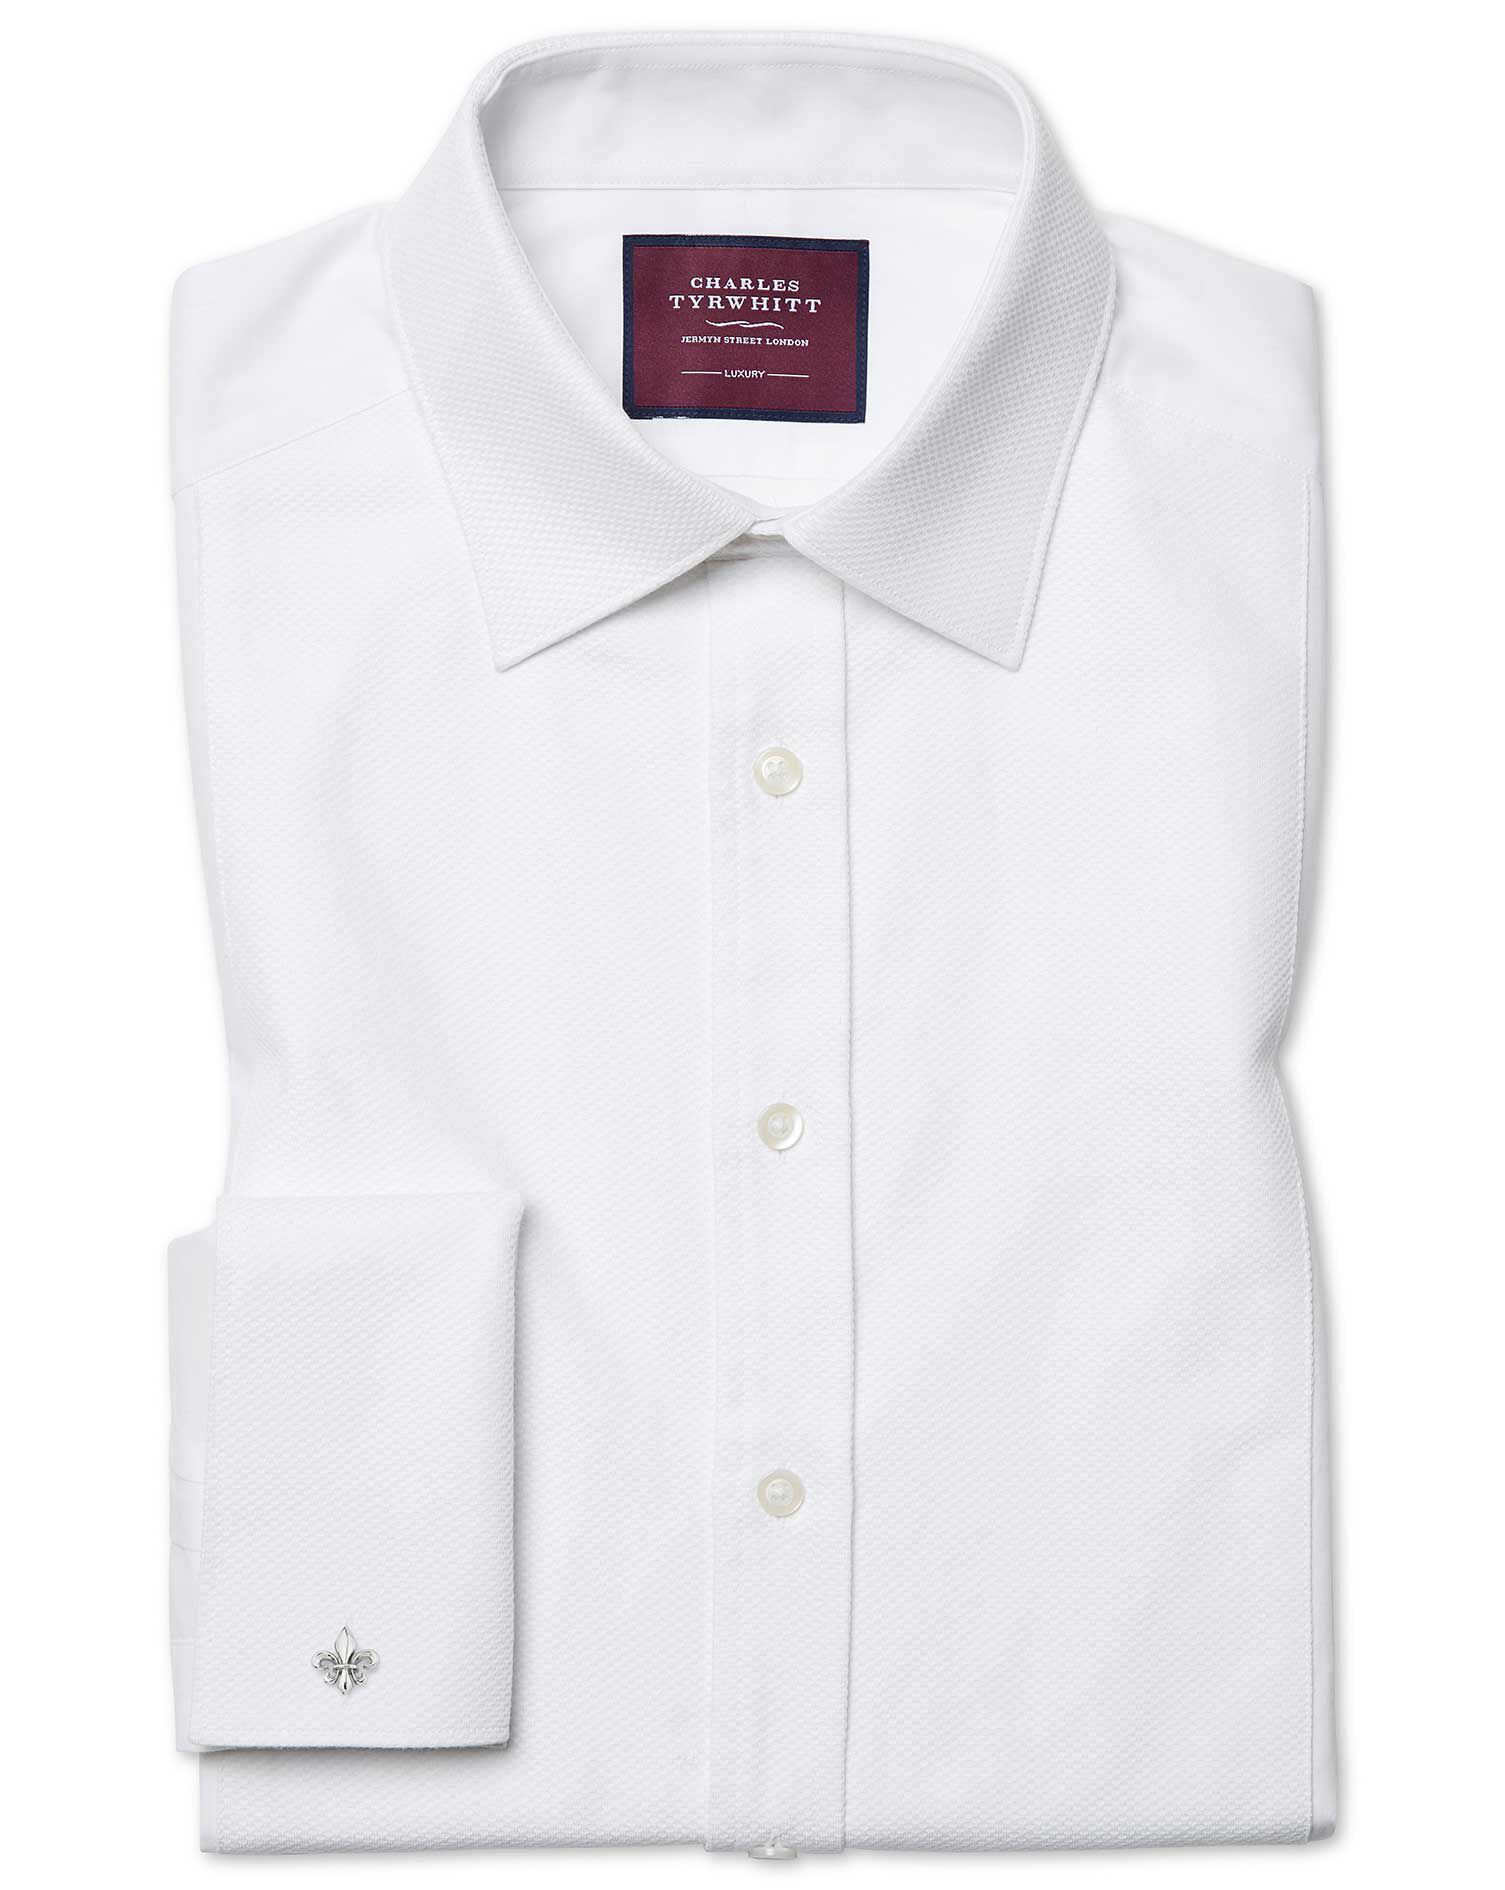 Extra Slim Fit Luxury Marcella White Evening Egyptian Cotton Formal Shirt Double Cuff Size 15/33 by